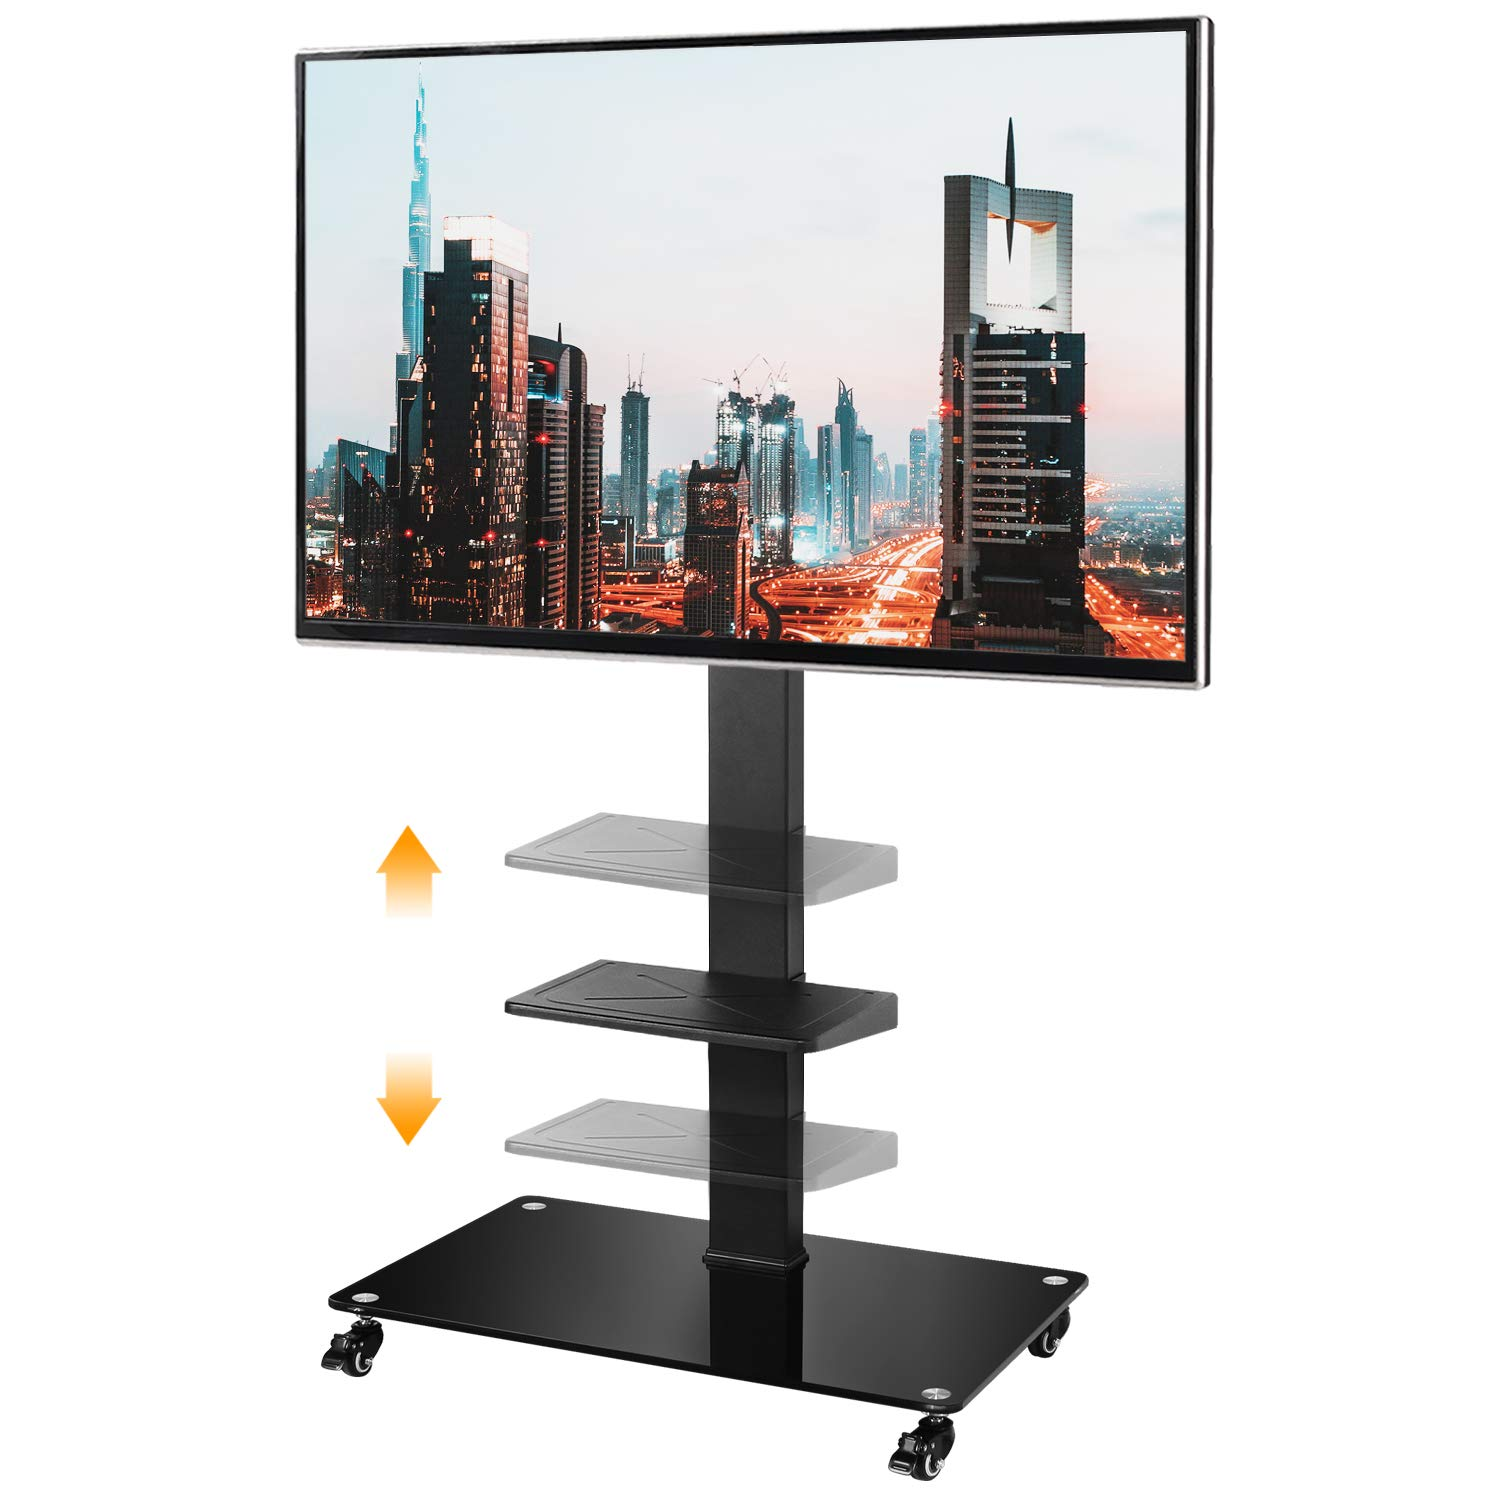 5Rcom Rolling TV Cart Mobile TV Stand with Lockable Caster Wheels and Shelves, for 32 37 42 46 50 55 60 65 inch TVs,Floor TV Stand with Height Adjustment/Swivel Mount